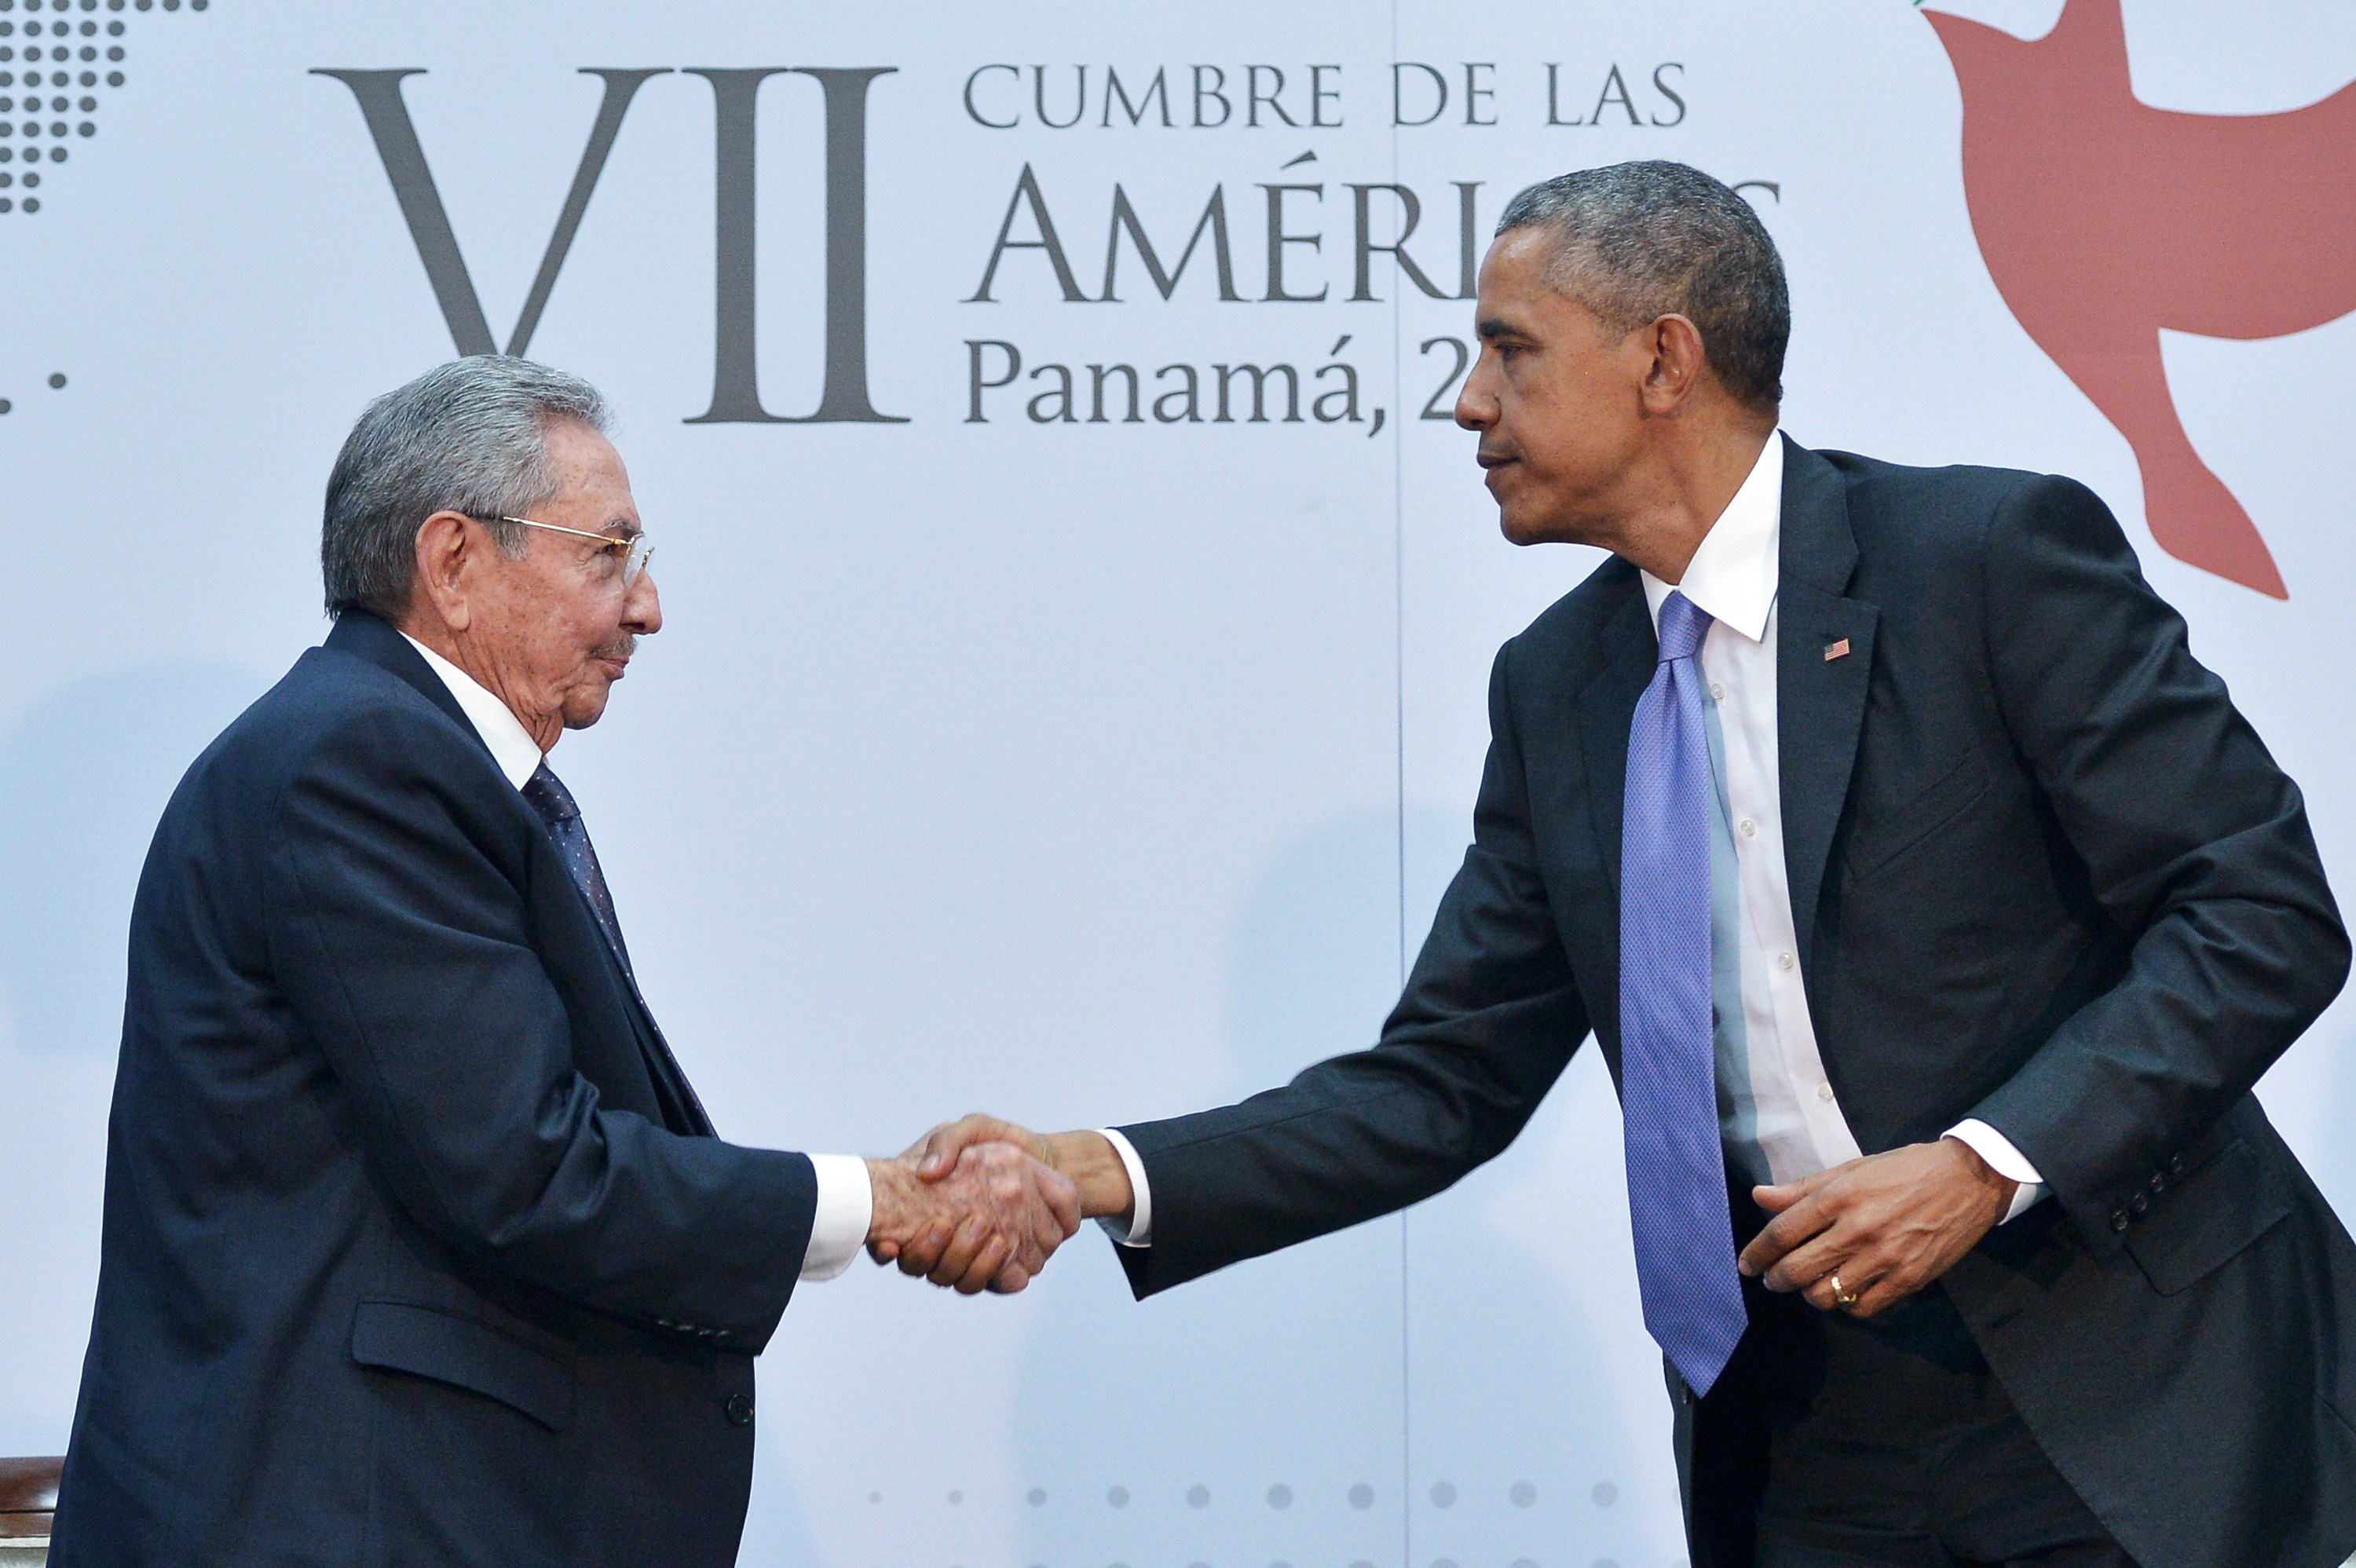 President Barack Obama (R) shakes hands with Cuban Dictator Raul Castro (L) during the Summit of the Americas at the ATLAPA Convention Center, in Panama City, on April 11, 2015. (Mandel Ngan/AFP/Getty Images)